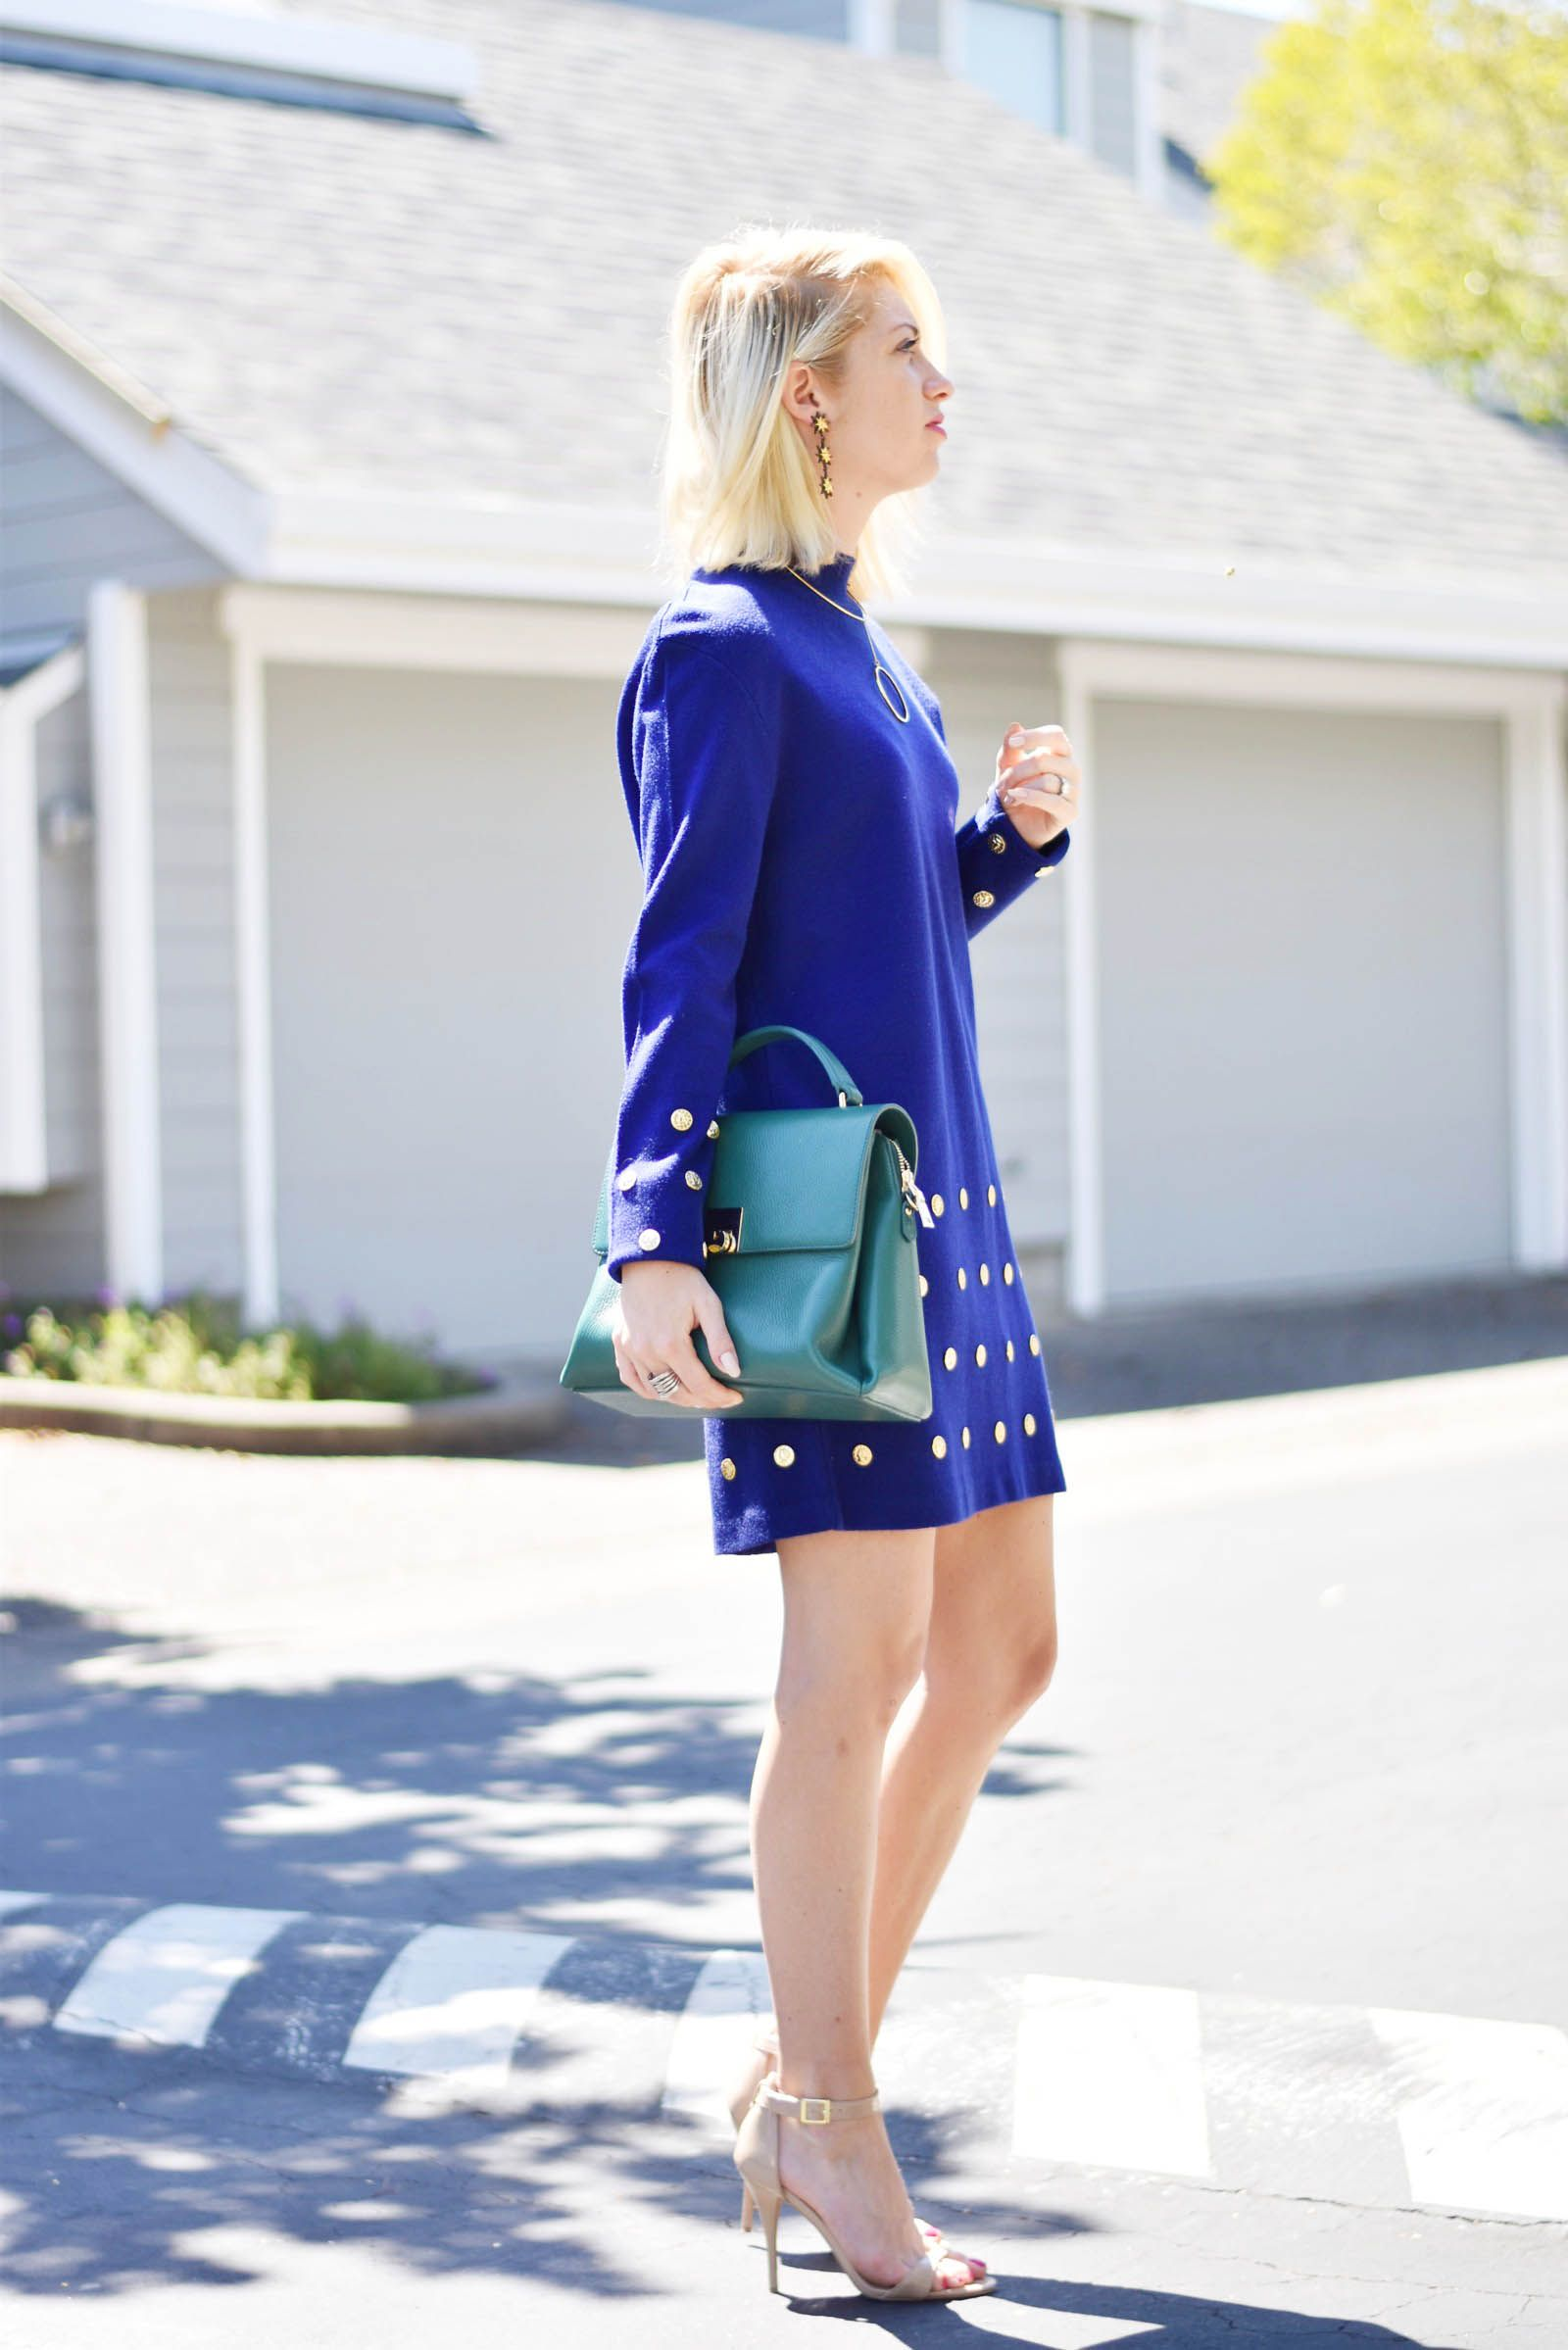 vintage shopping tips: pick your decade, vintage 80s any calico corner sweater dress, green top handle mon purse